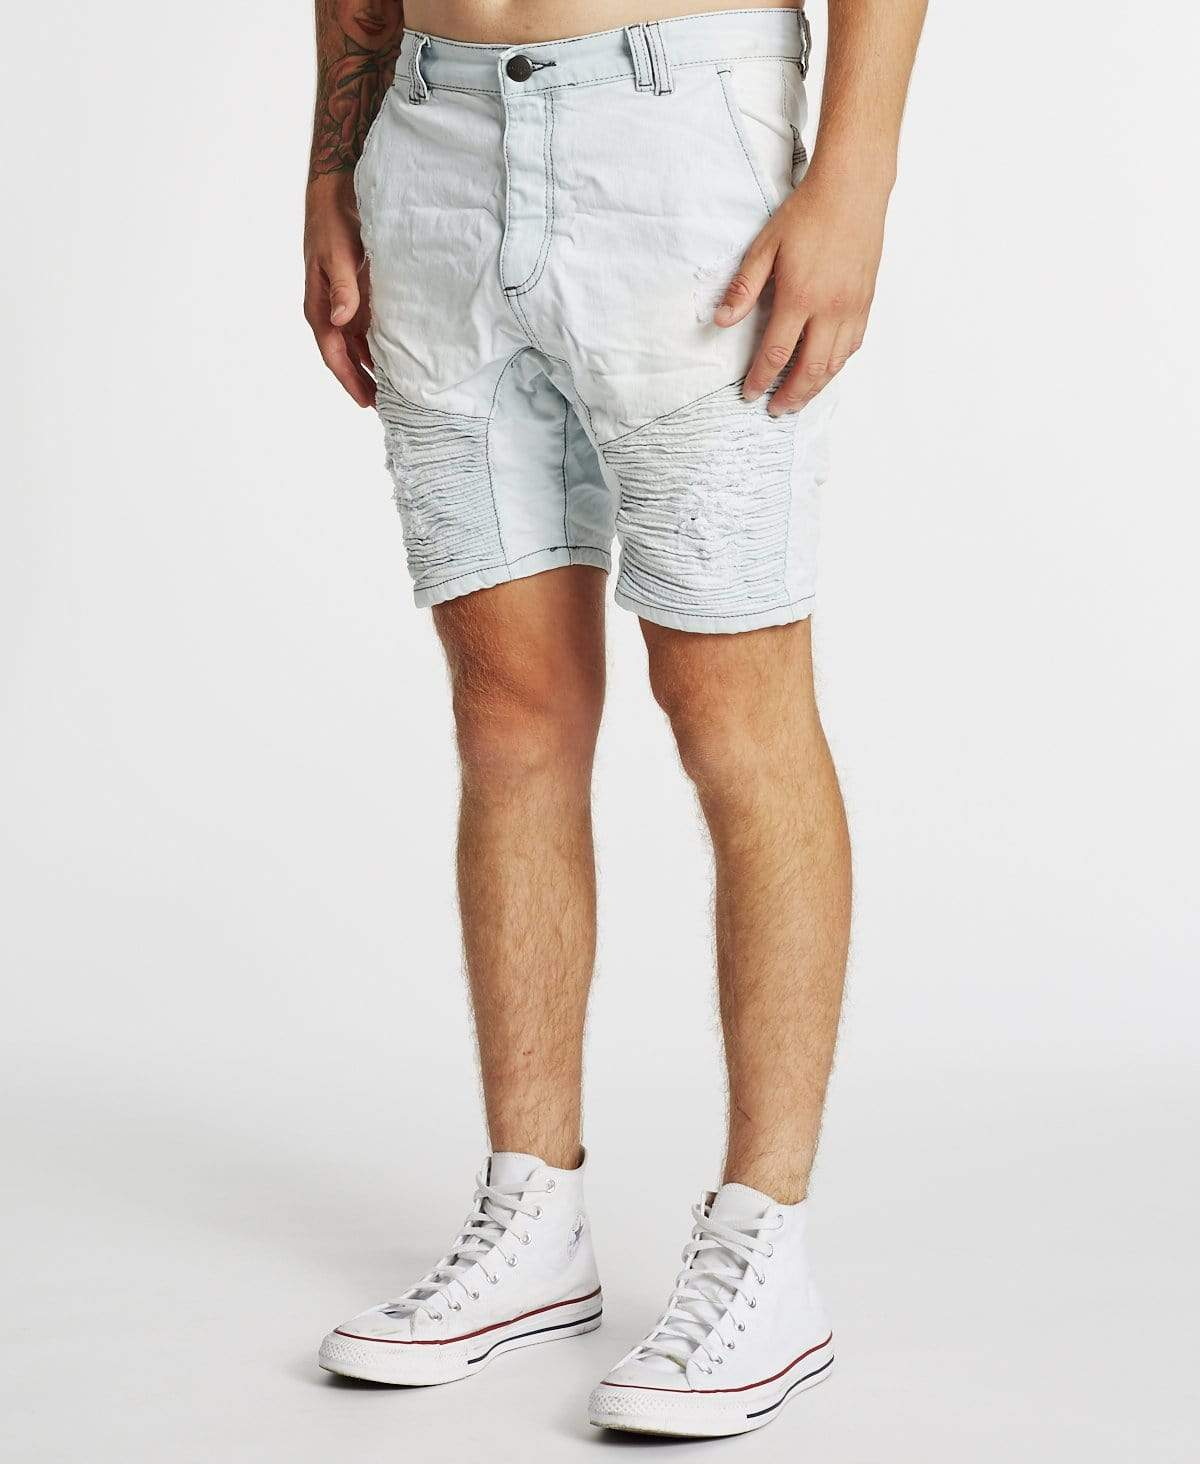 Nena & Pasadena Destroyer Shorts Hyper Wash